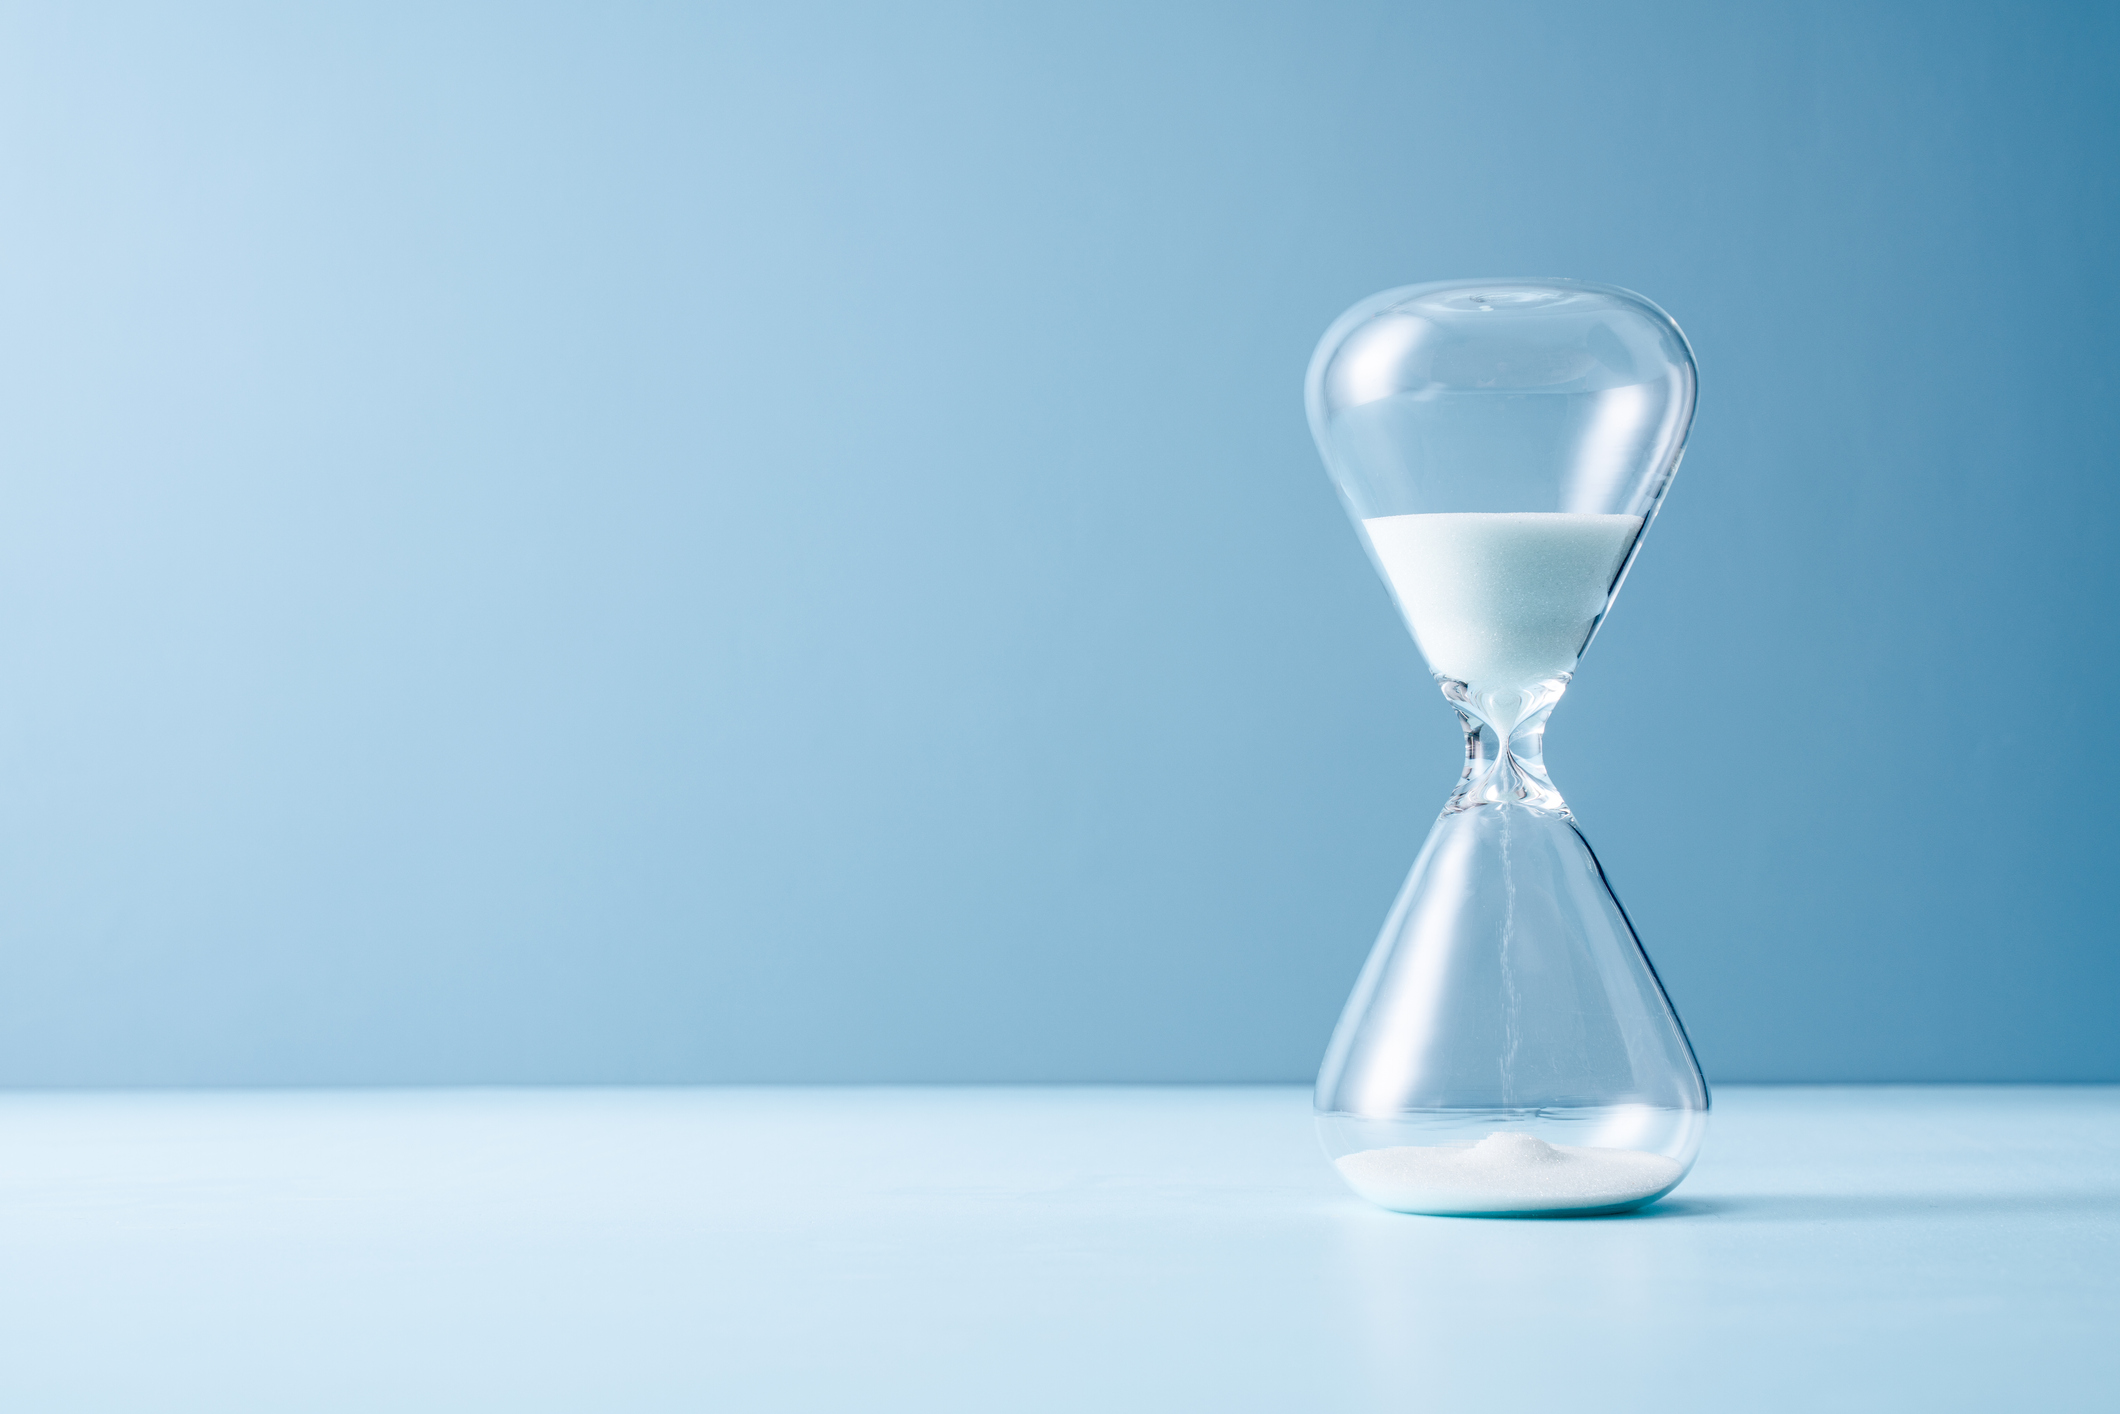 Why Are We So Bad at Meeting Deadlines?